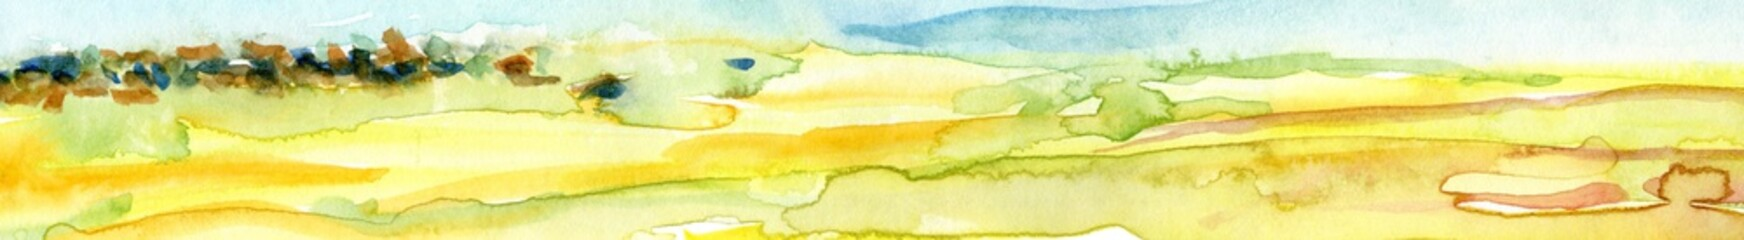 Papiers peints Jaune de seuffre Hand Drawn Watercolor Landscape